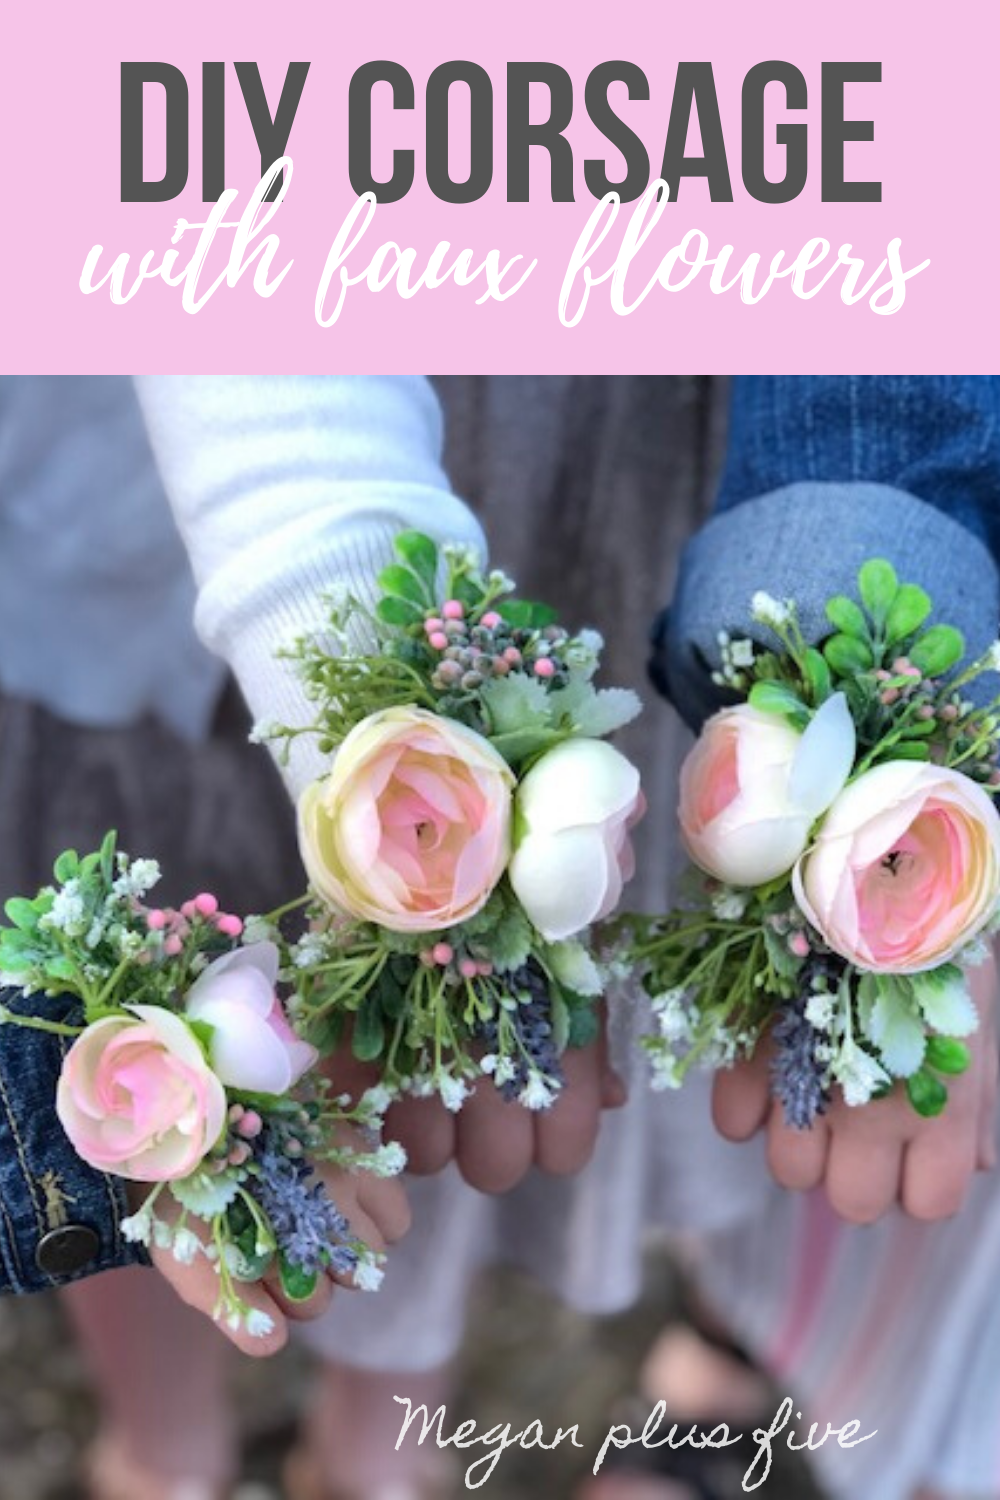 DIY corsage made with faux flowers. How to make a corsage for little girls with fake flowers from Walmart. Silk flower easy corsage for spring, prom, weddings, father daughter dance.